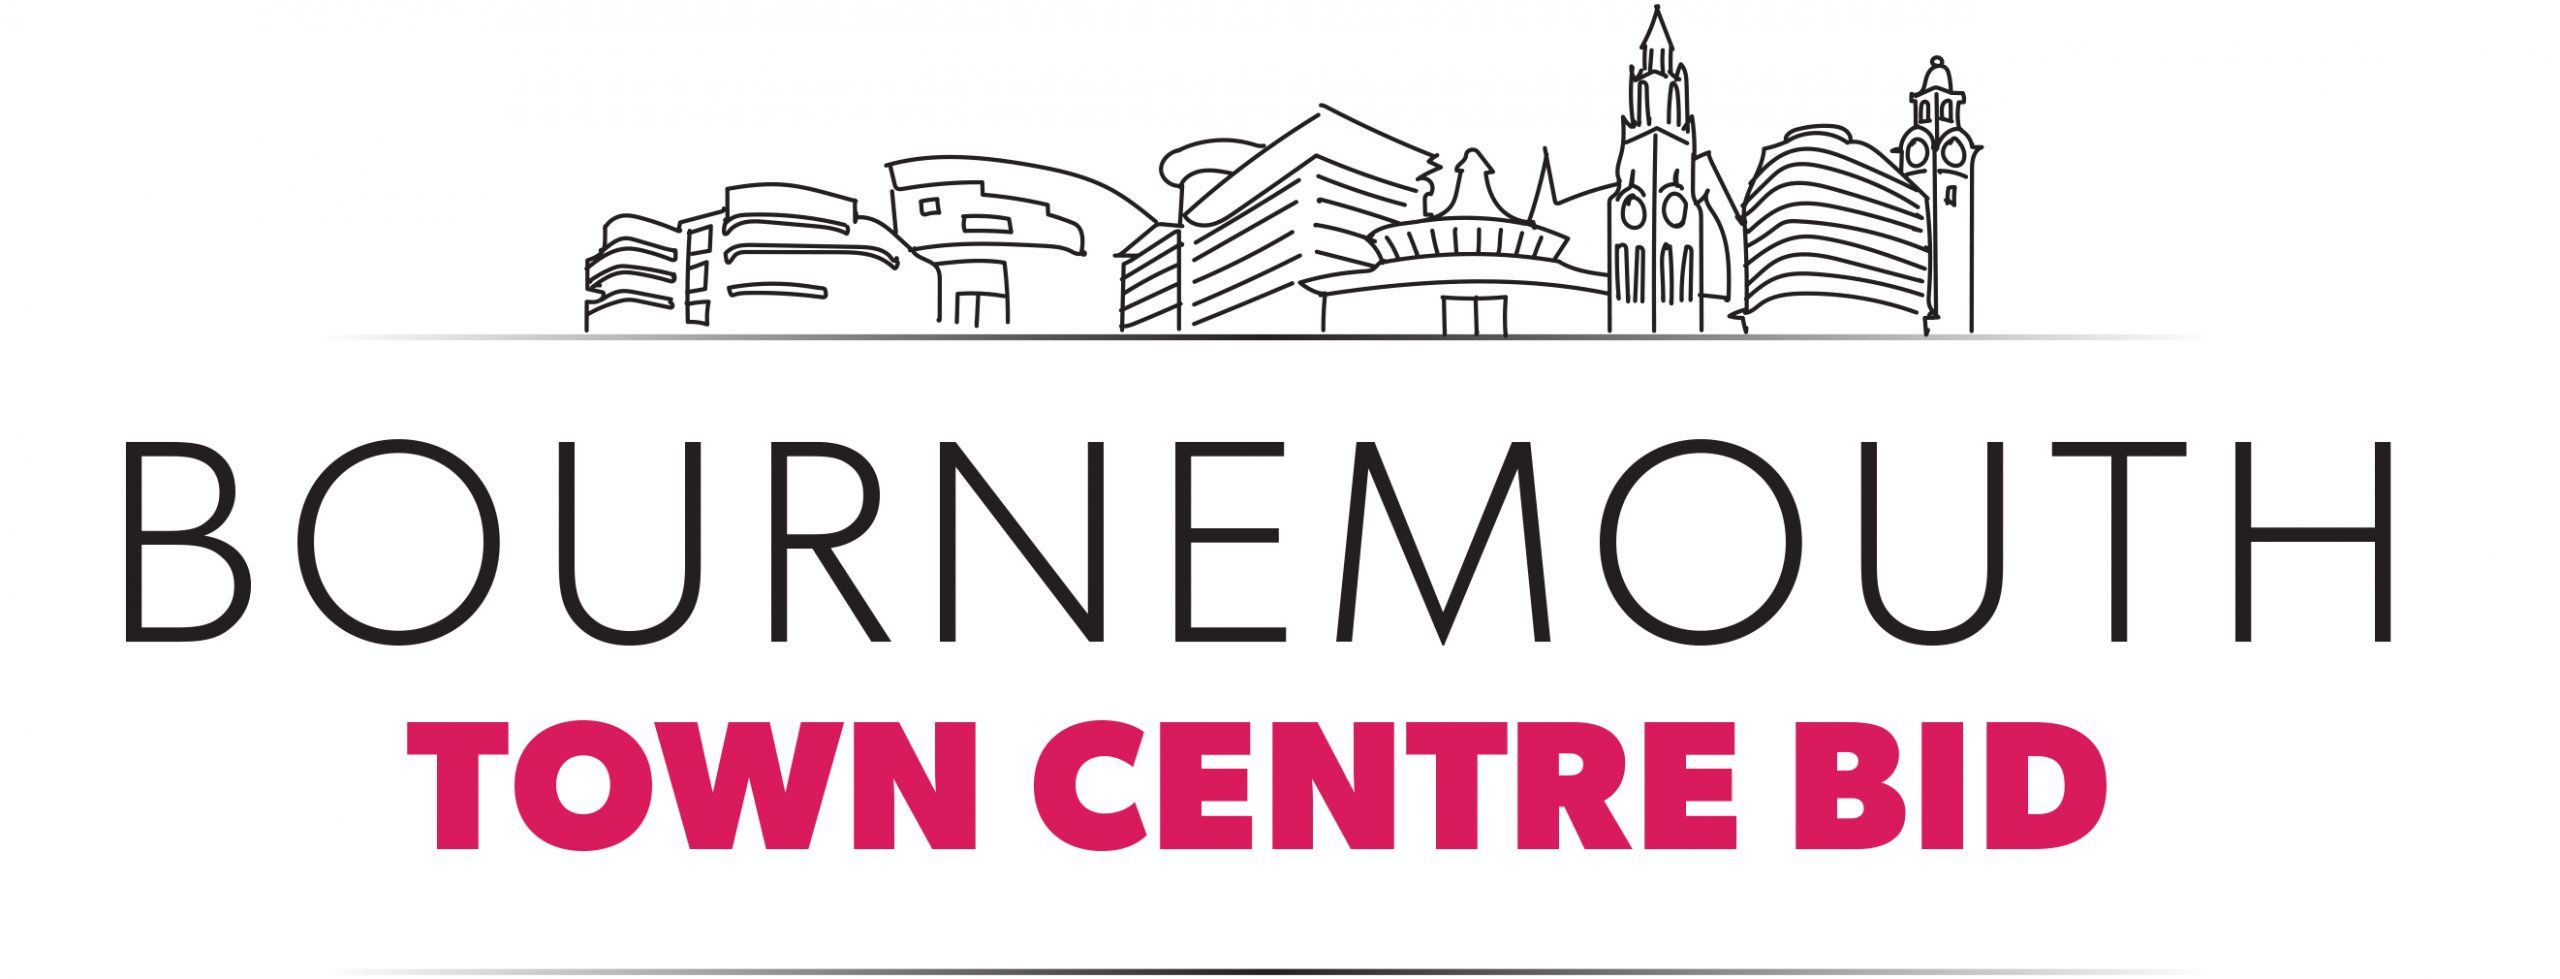 Bournemouth Town Centre BID Logo - large